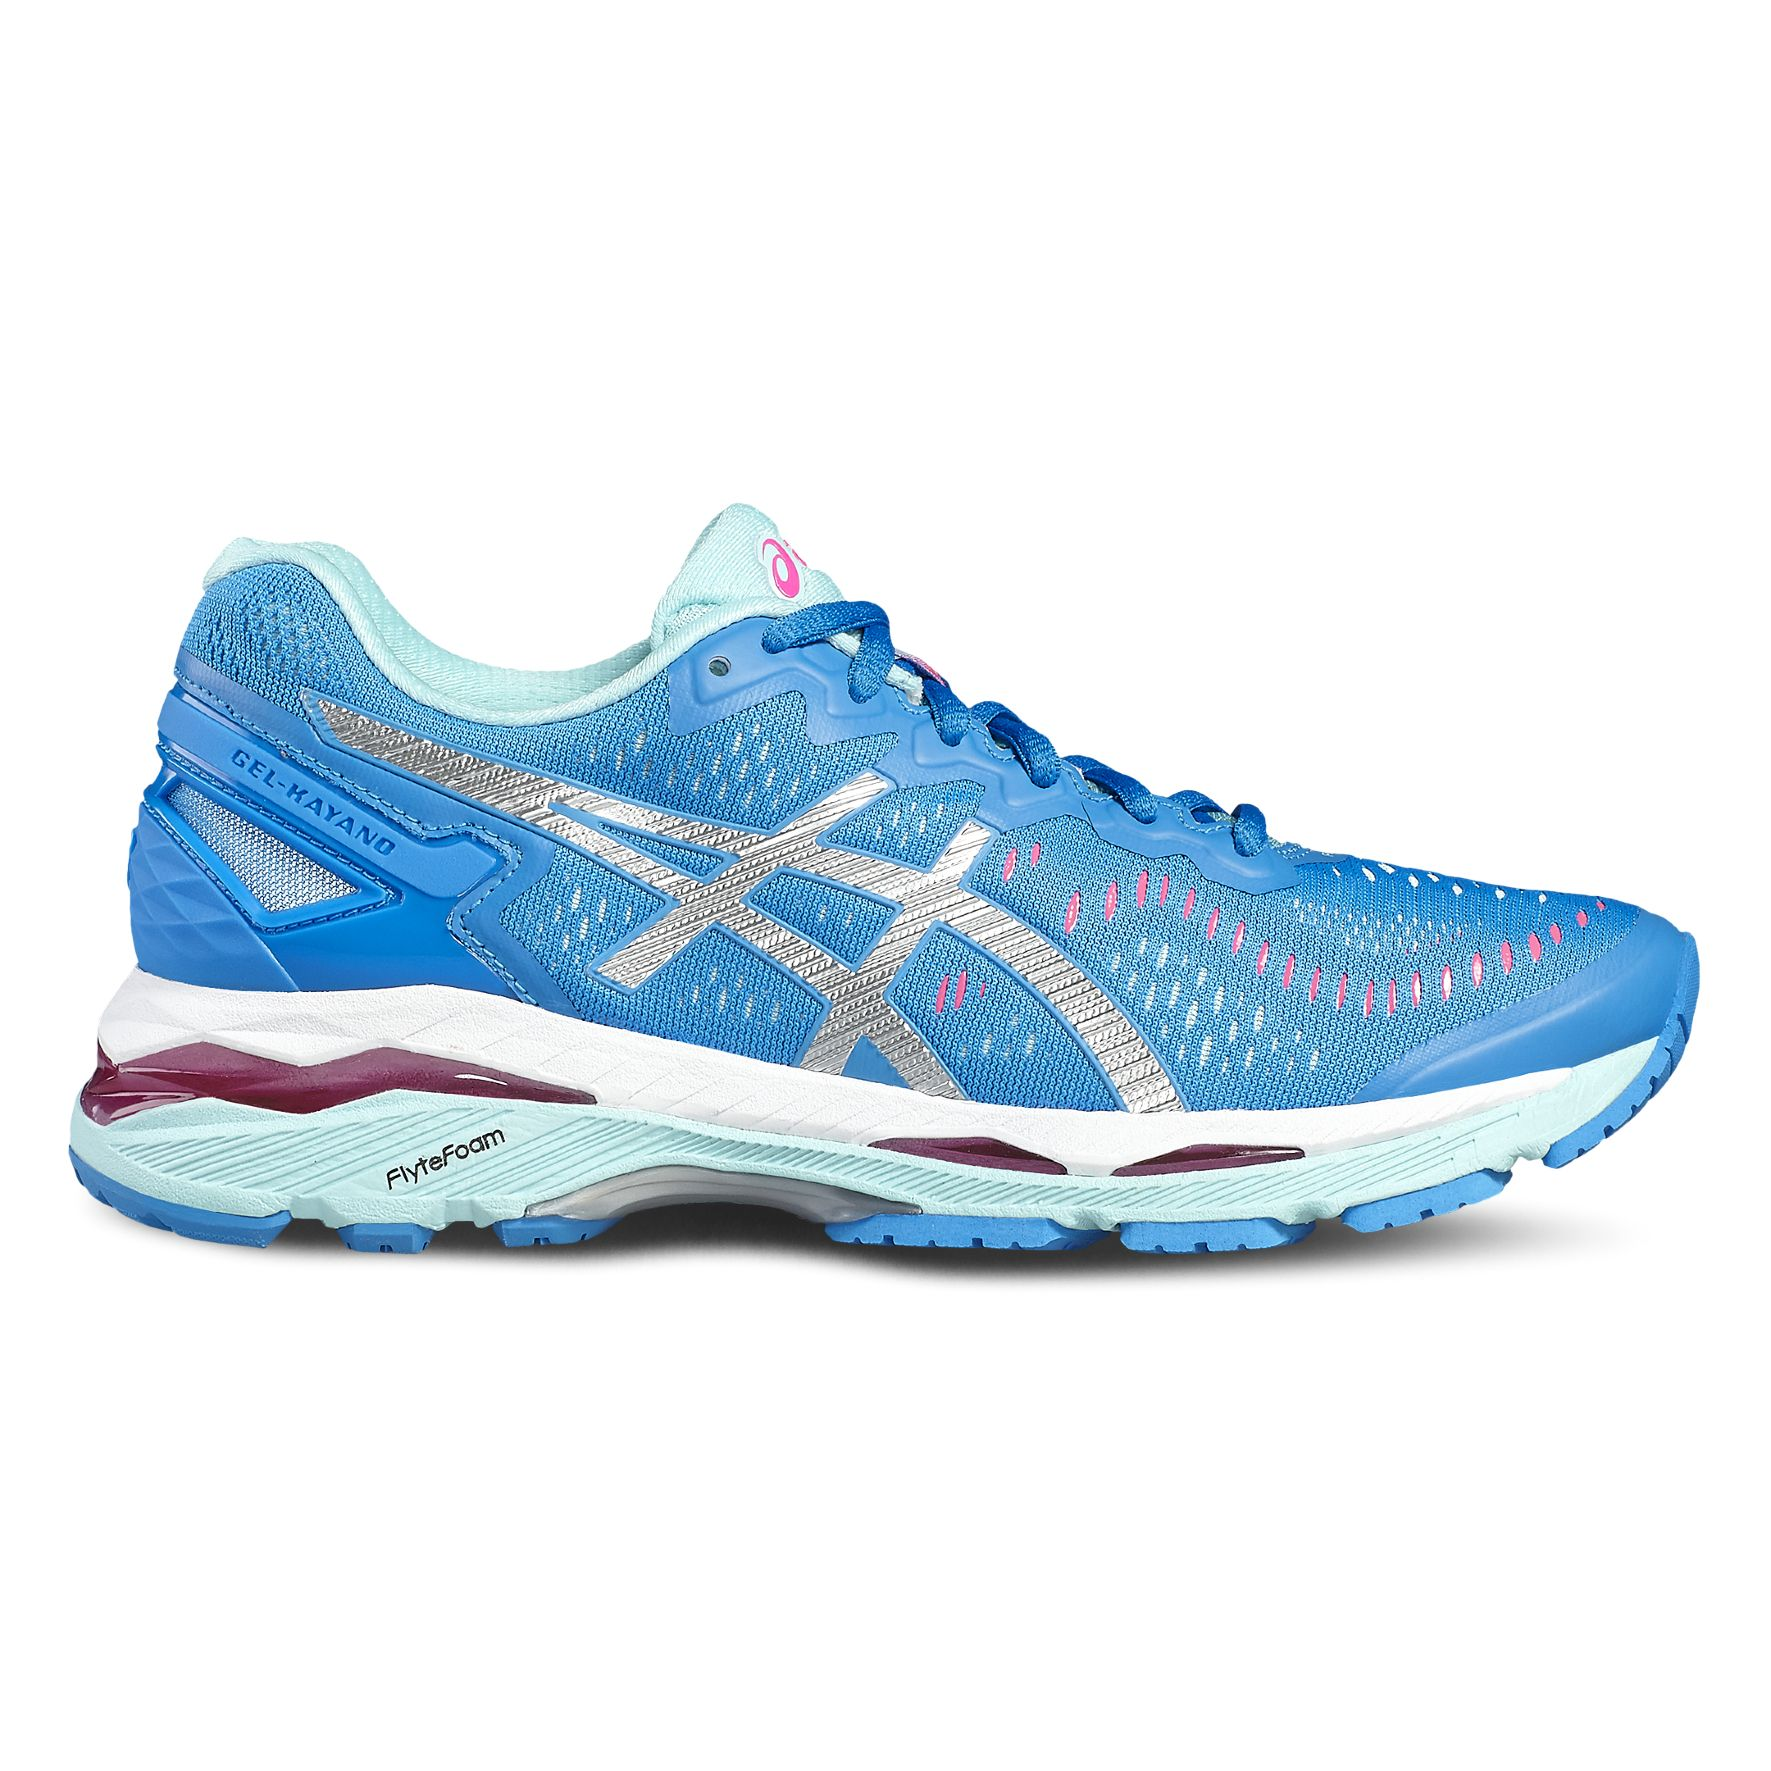 Asics Gel Kayano Asics Gel Kayano 23 Ladies Running Shoes